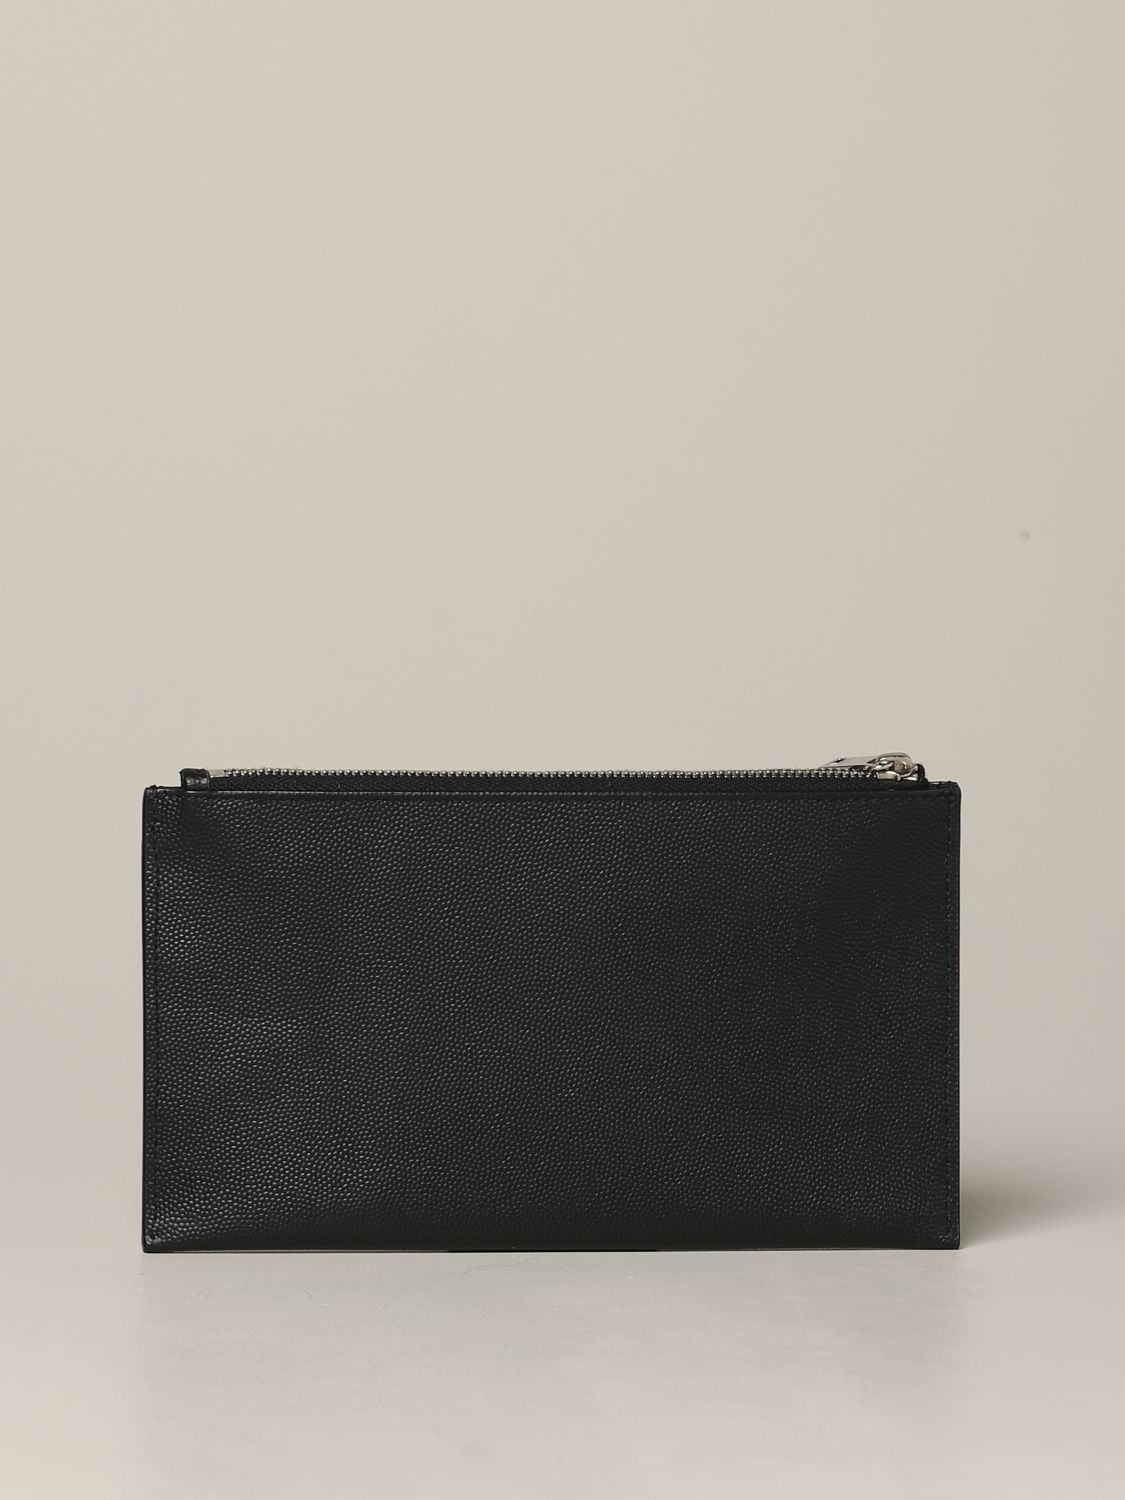 Mini Saint Laurent clutch in micro textured leather black 2